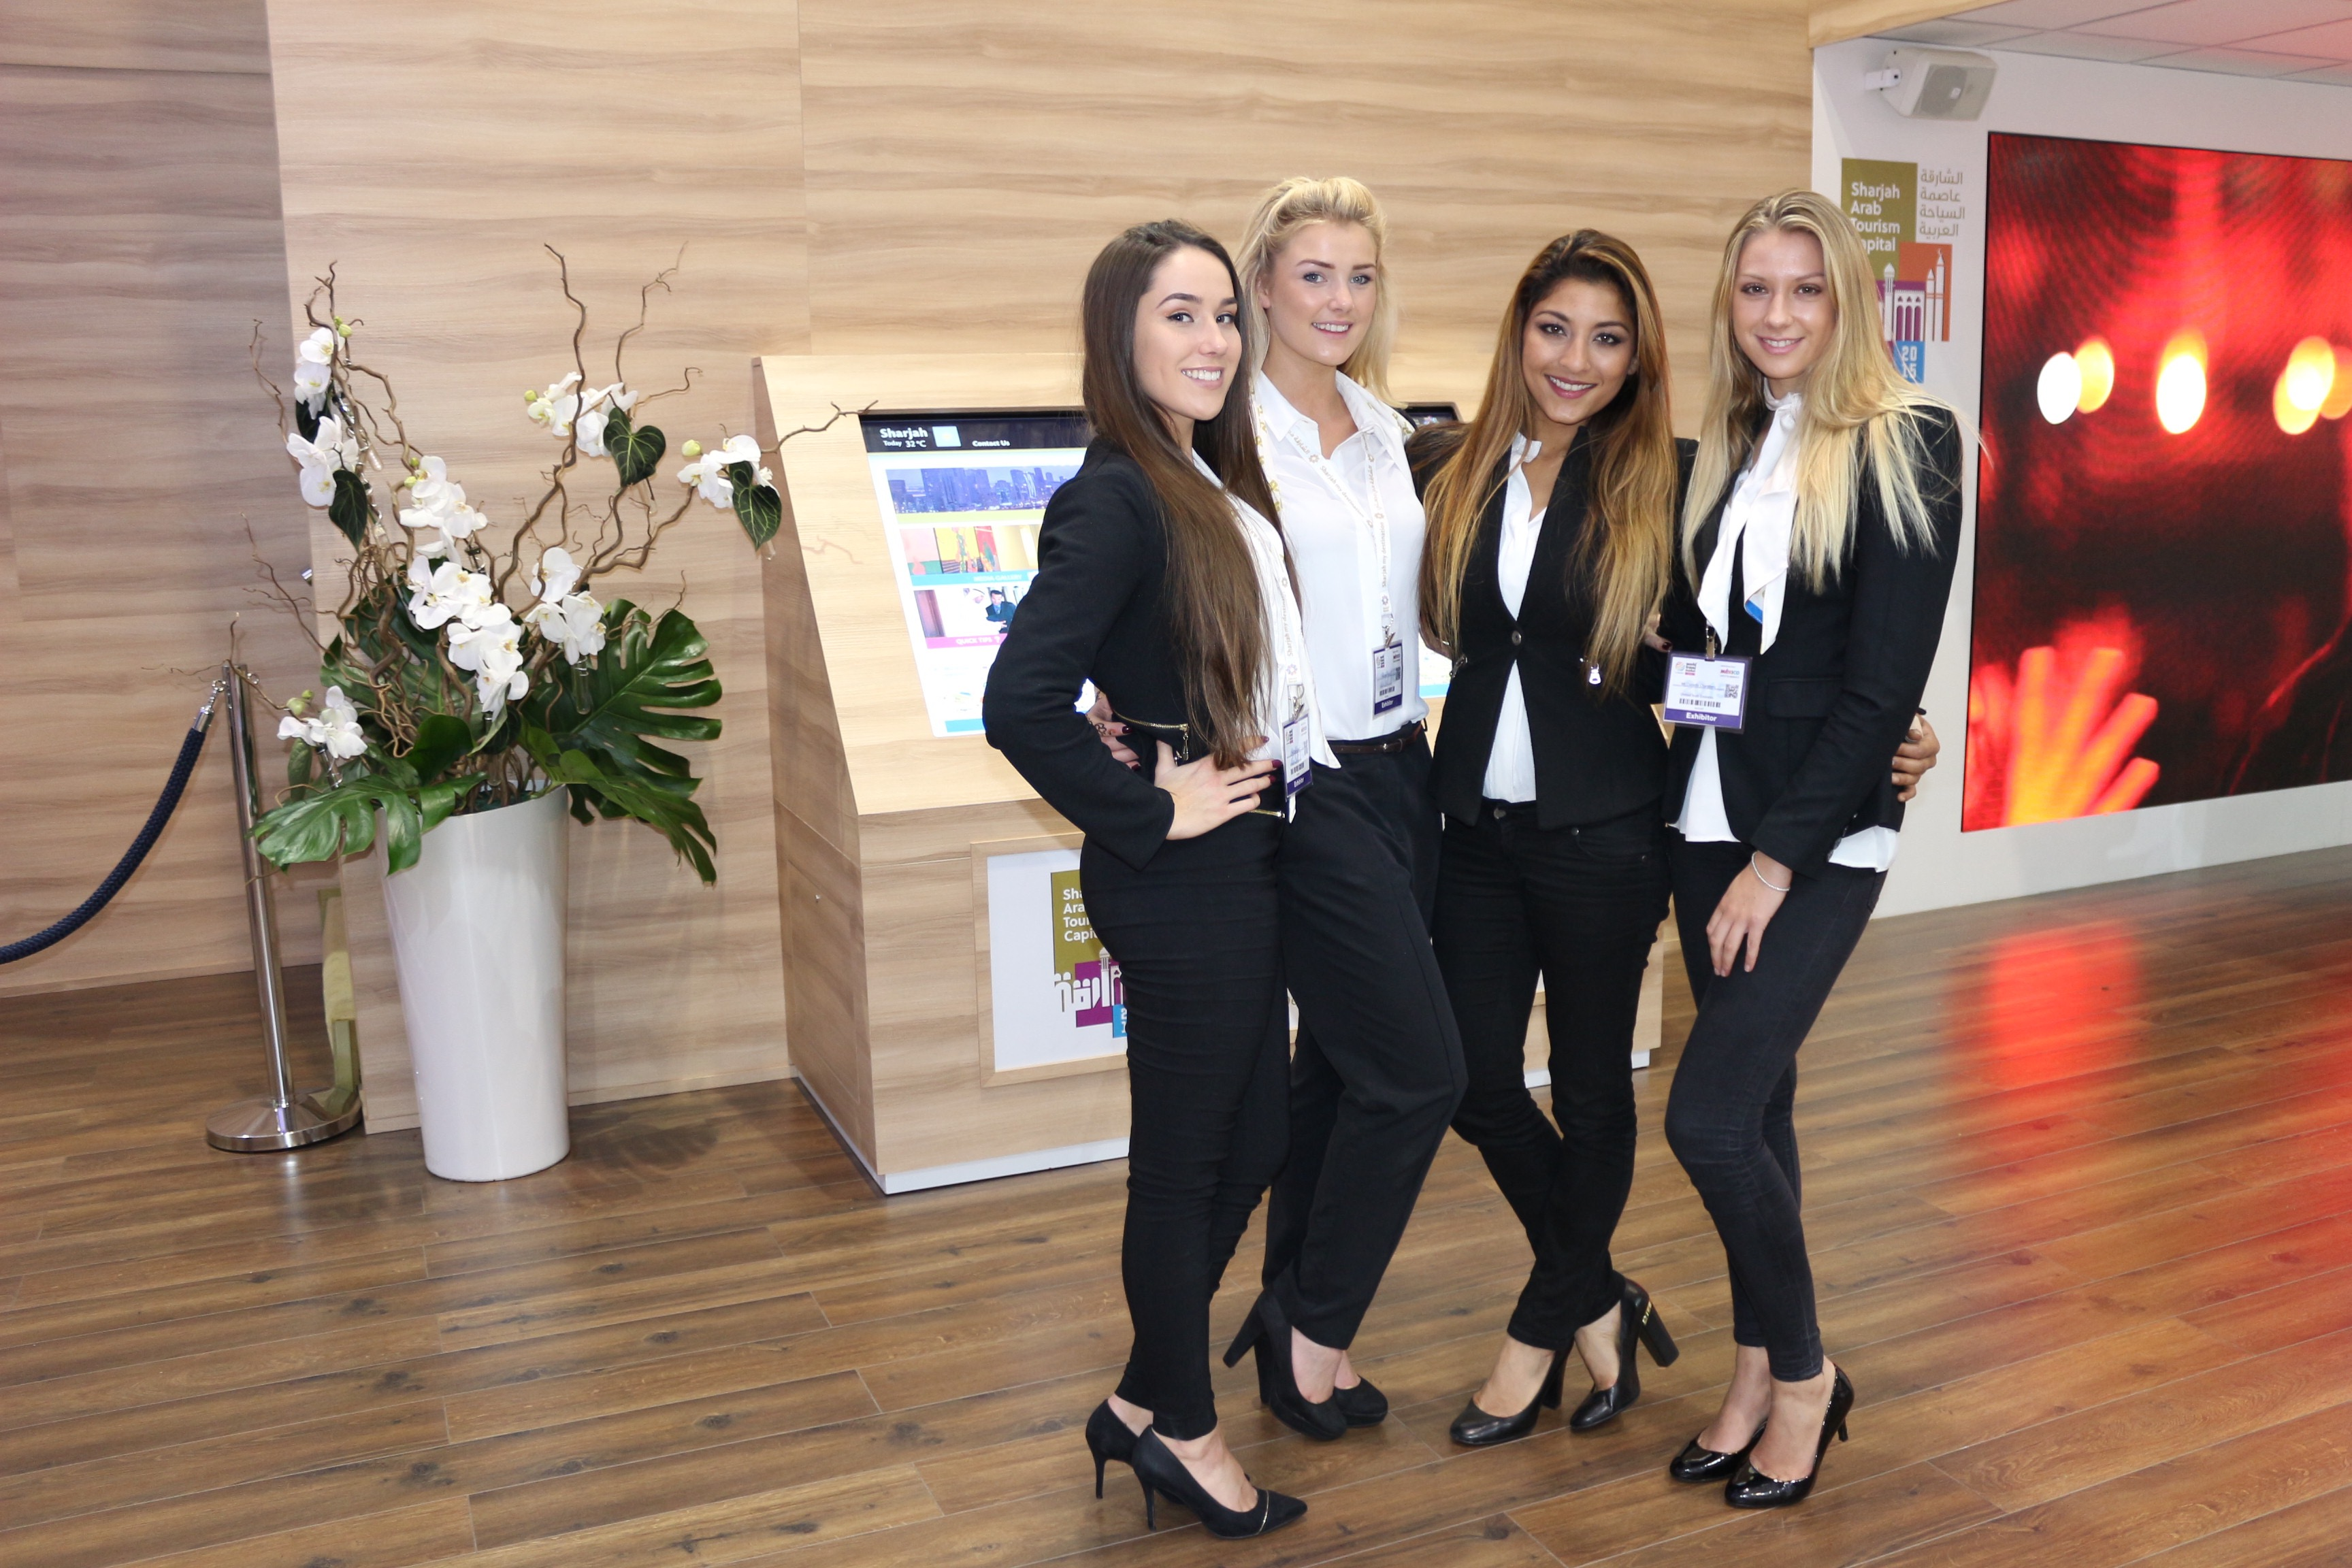 Exhibition Stand Hostesses